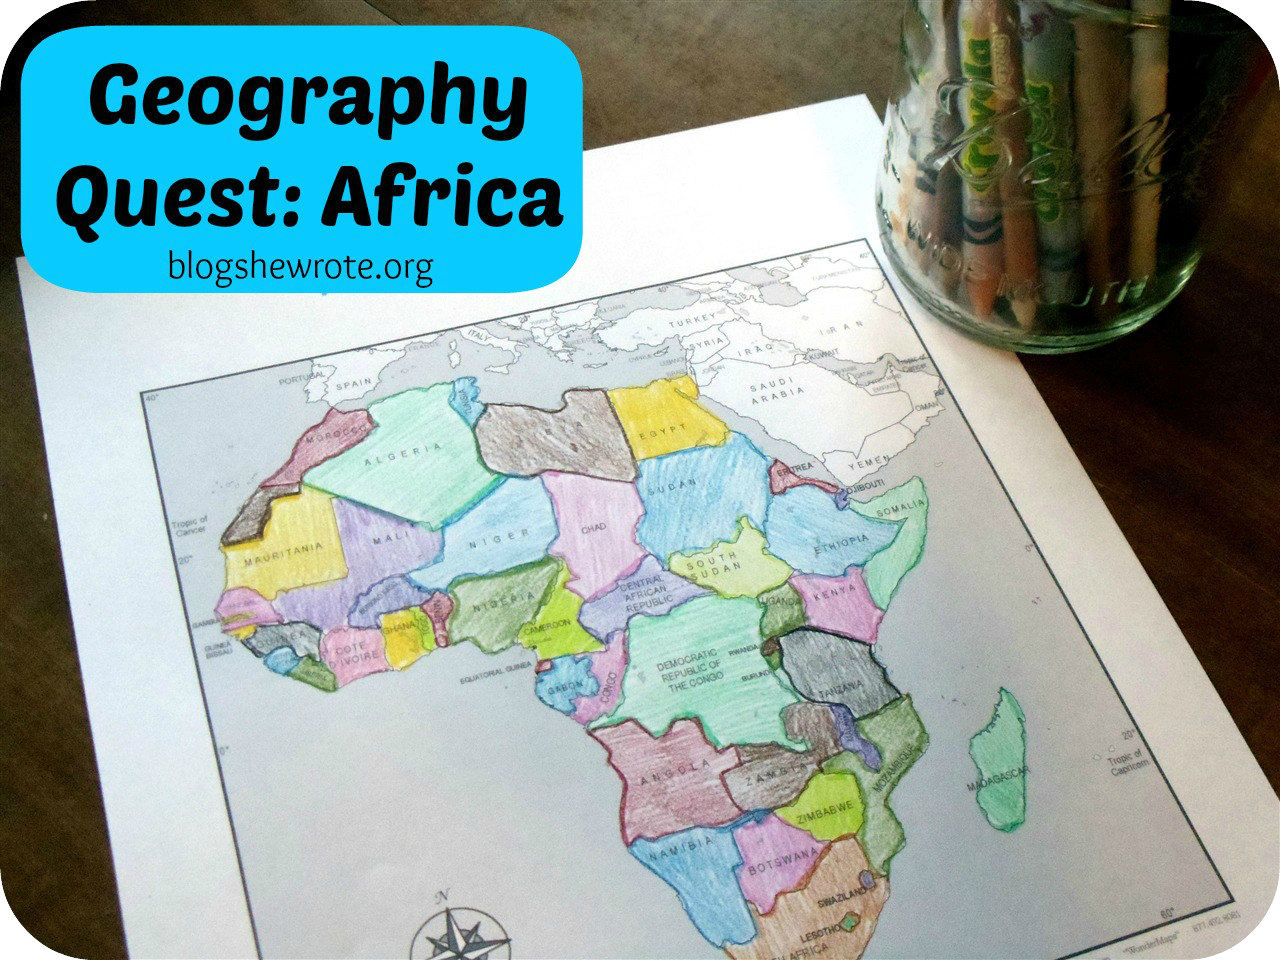 Blog, She Wrote: Geography Quest Africa